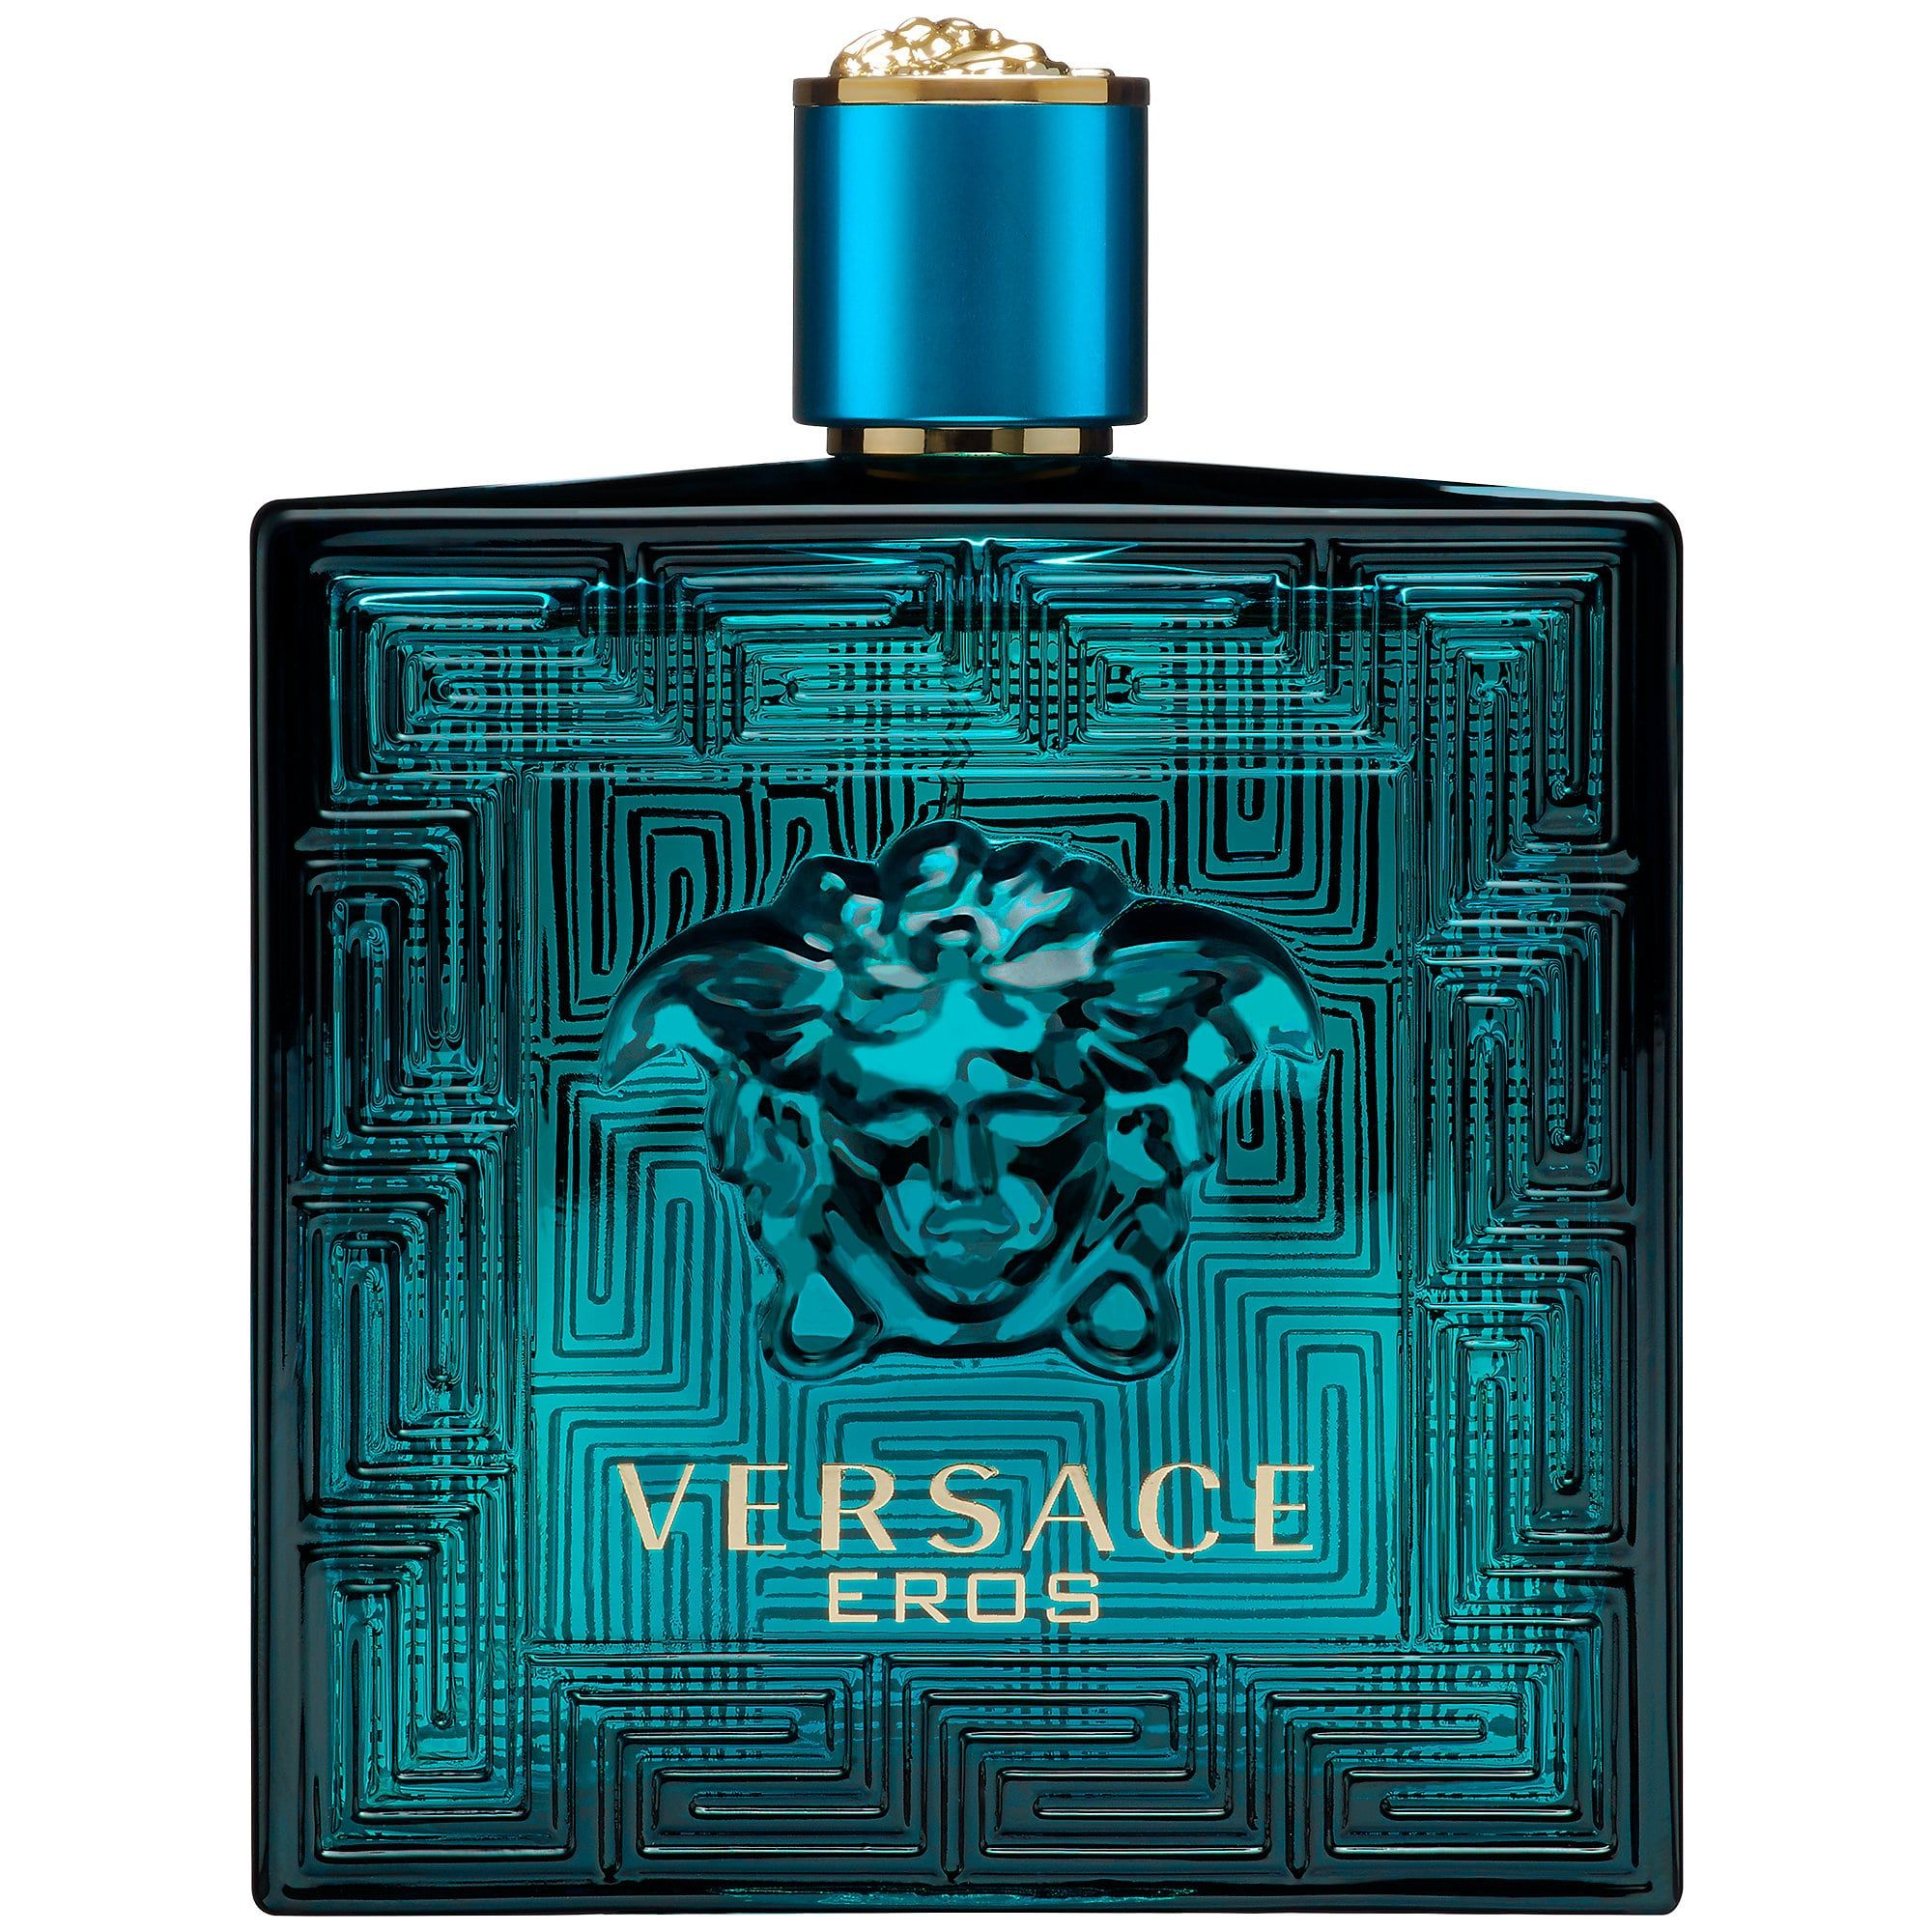 98e030326f Versace Eros 6.7 oz/ 200 mL Eau de Toilette Spray in 2019 | Products ...